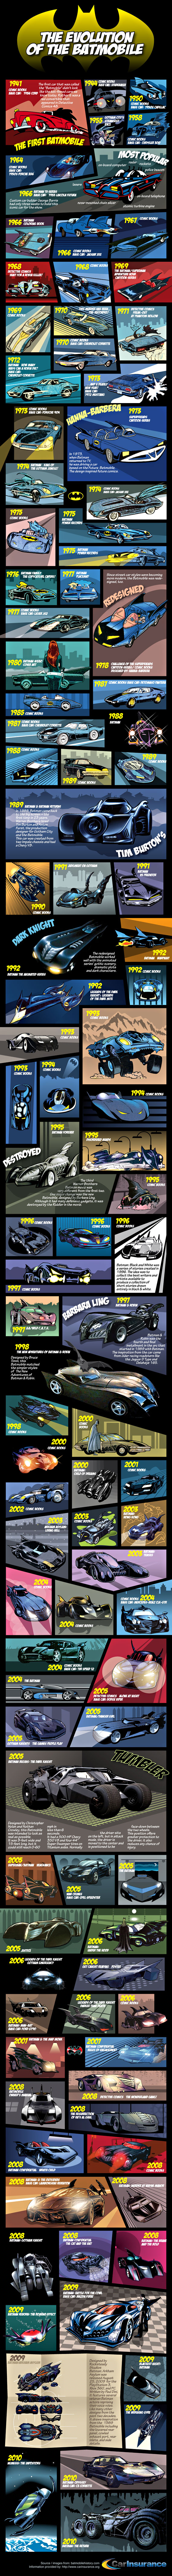 complete evolution batmobile Evolution de la Batmobile